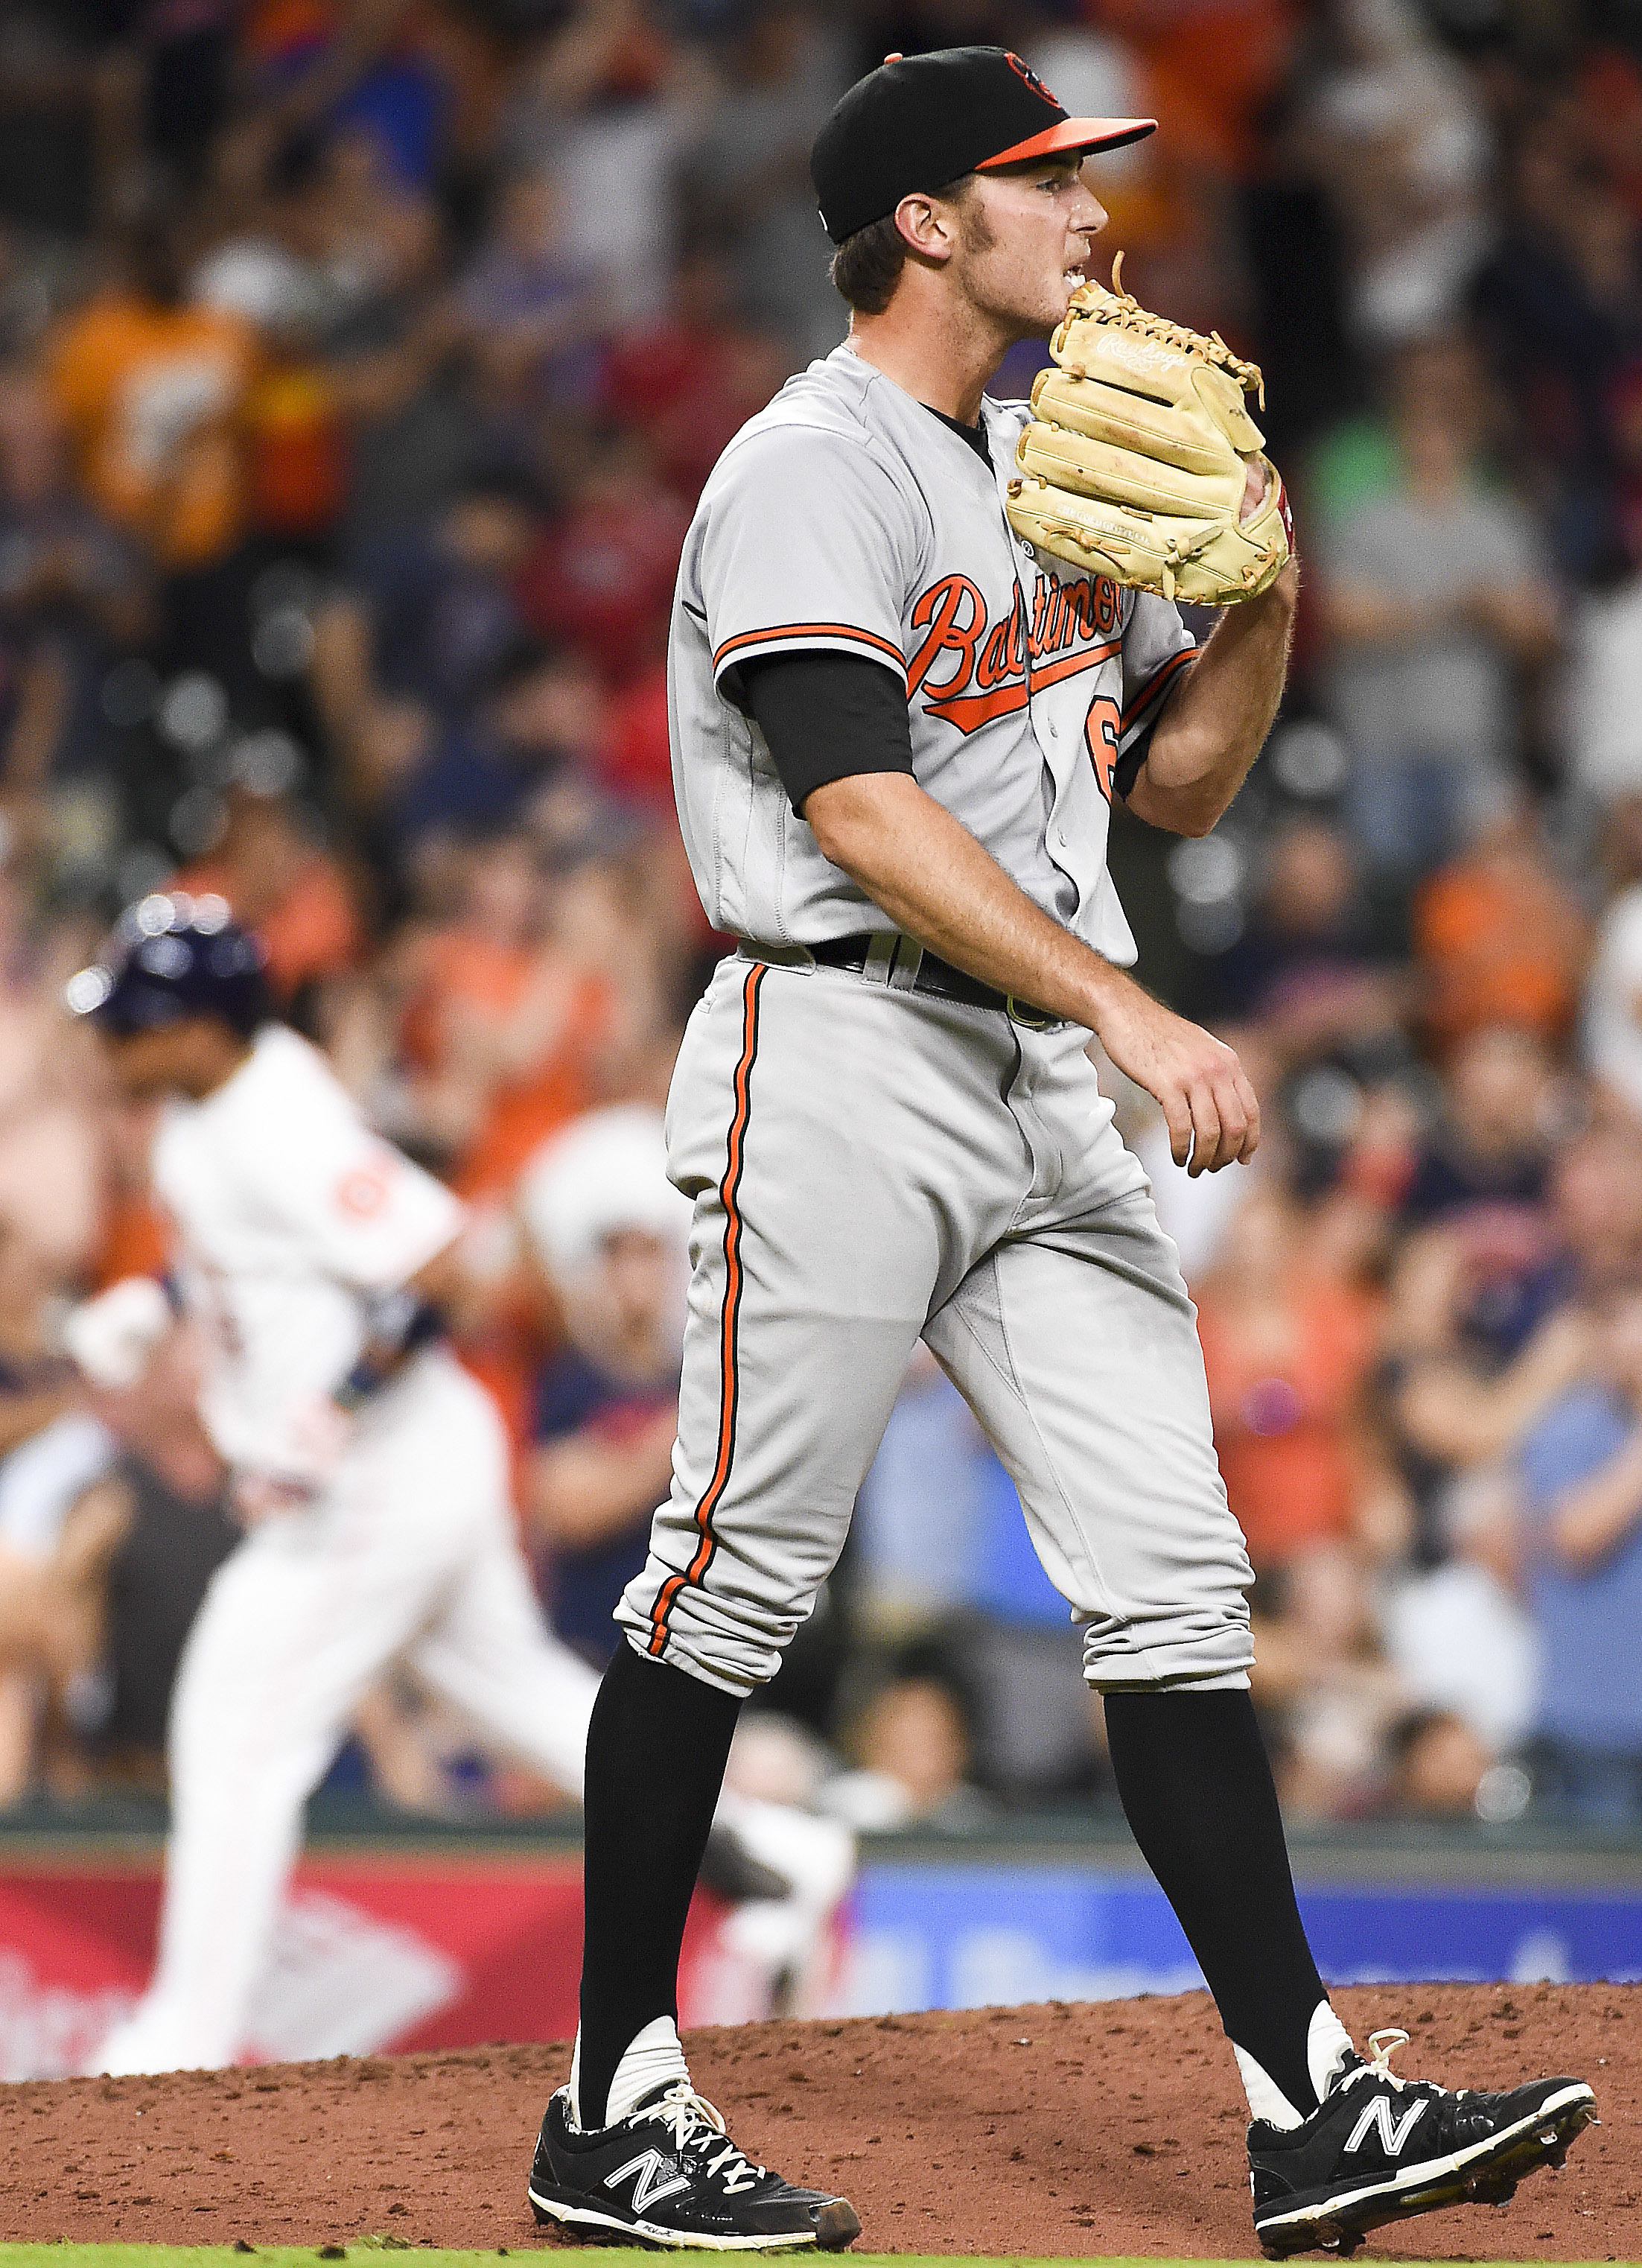 Baltimore Orioles starting pitcher Tyler Wilson, right, looks away as Houston Astros' Luis Valbuena, left, sounds the bases after hitting a two-run home run during the sixth inning of a baseball game, Wednesday, May 25, 2016, in Houston. (AP Photo/Eric Ch